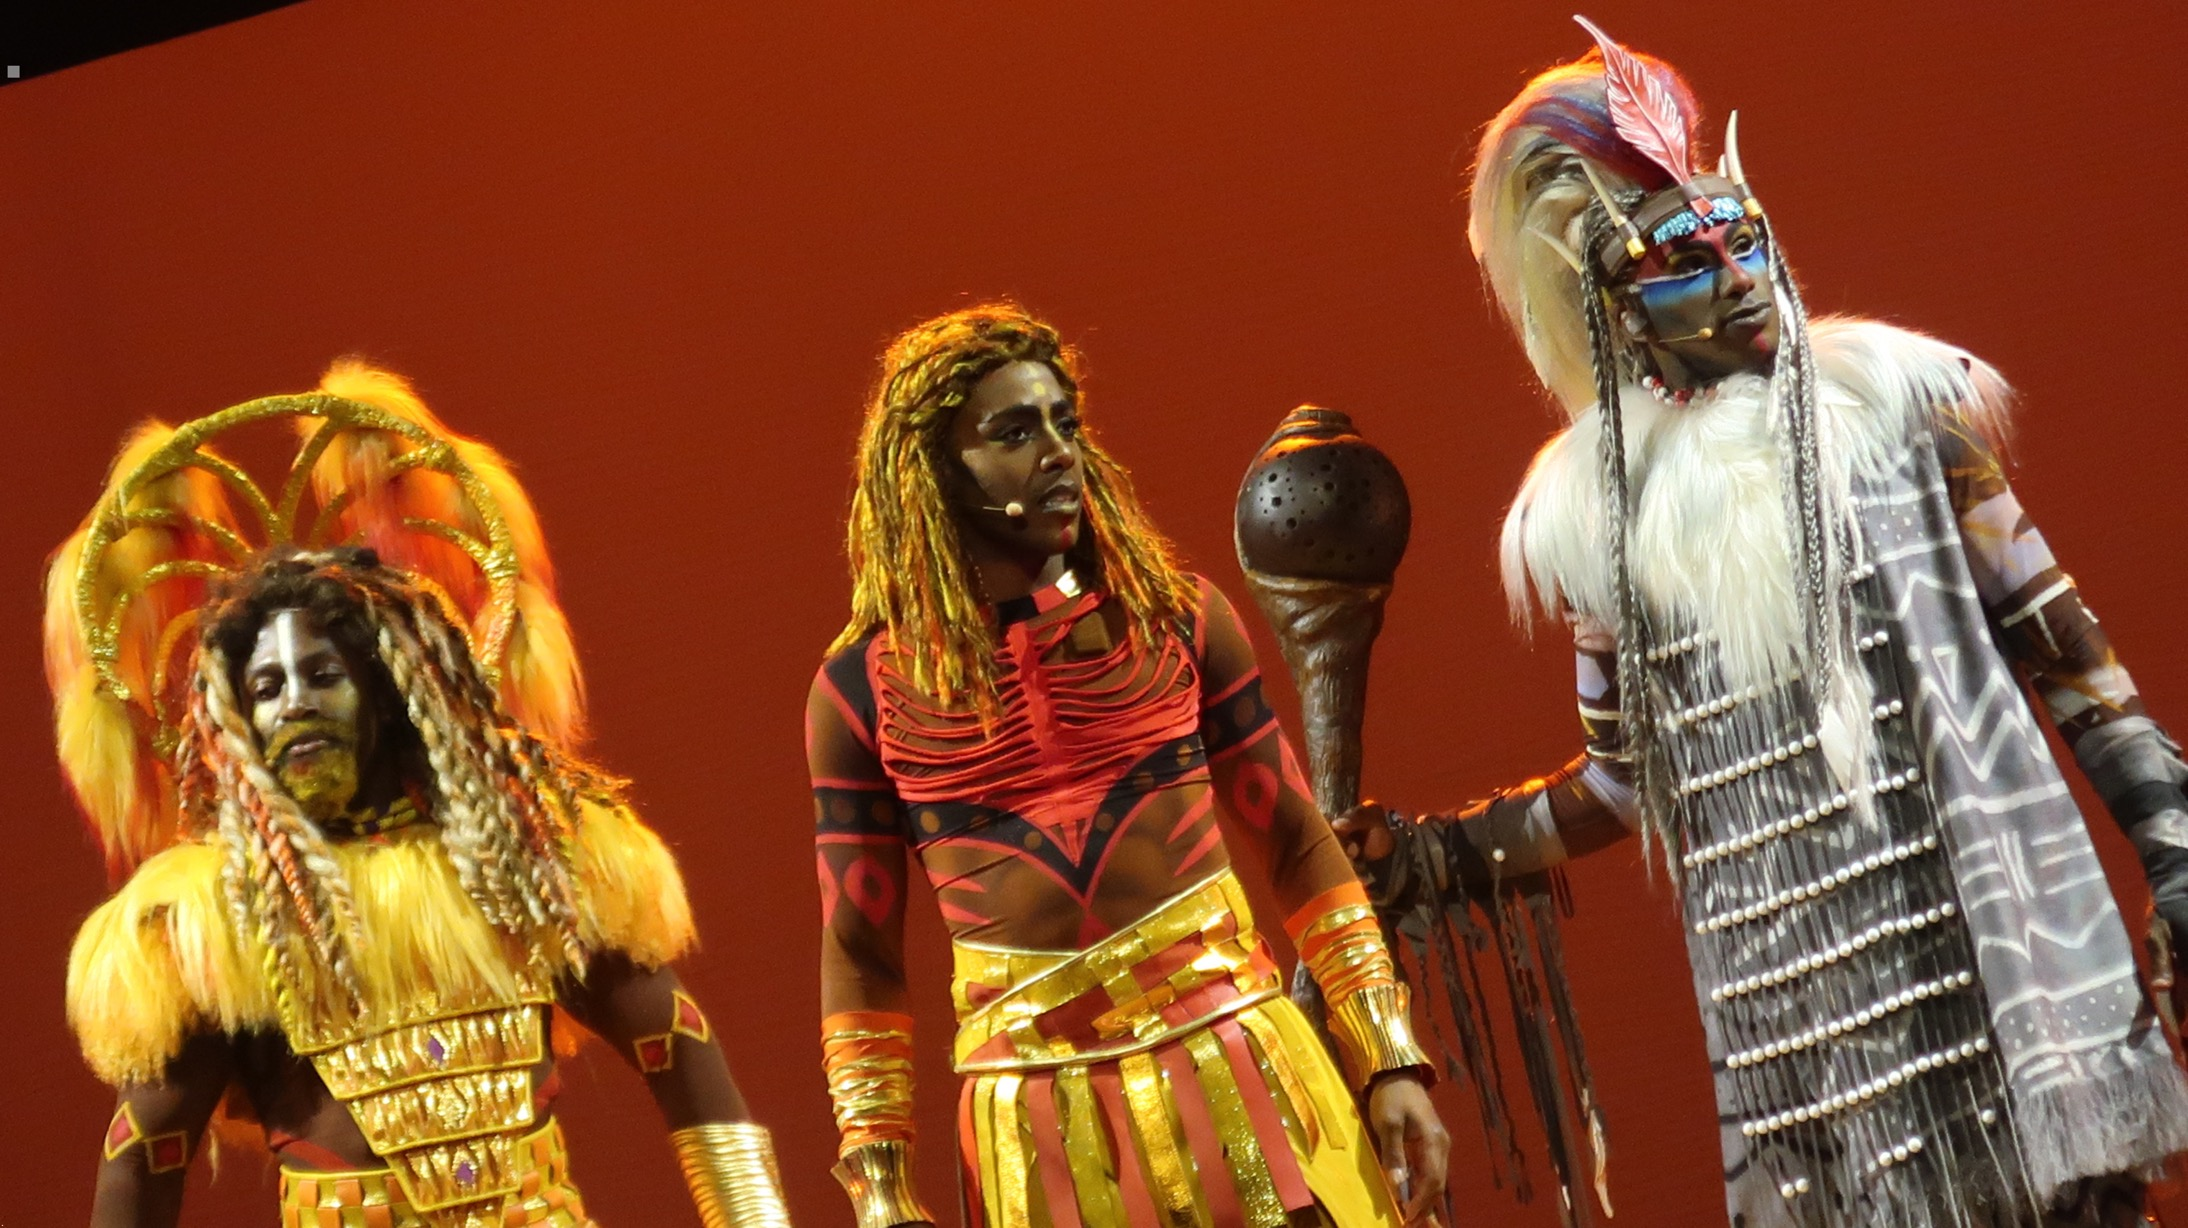 Fotogalerij: The Lion King: Rhythms of the Pride Lands